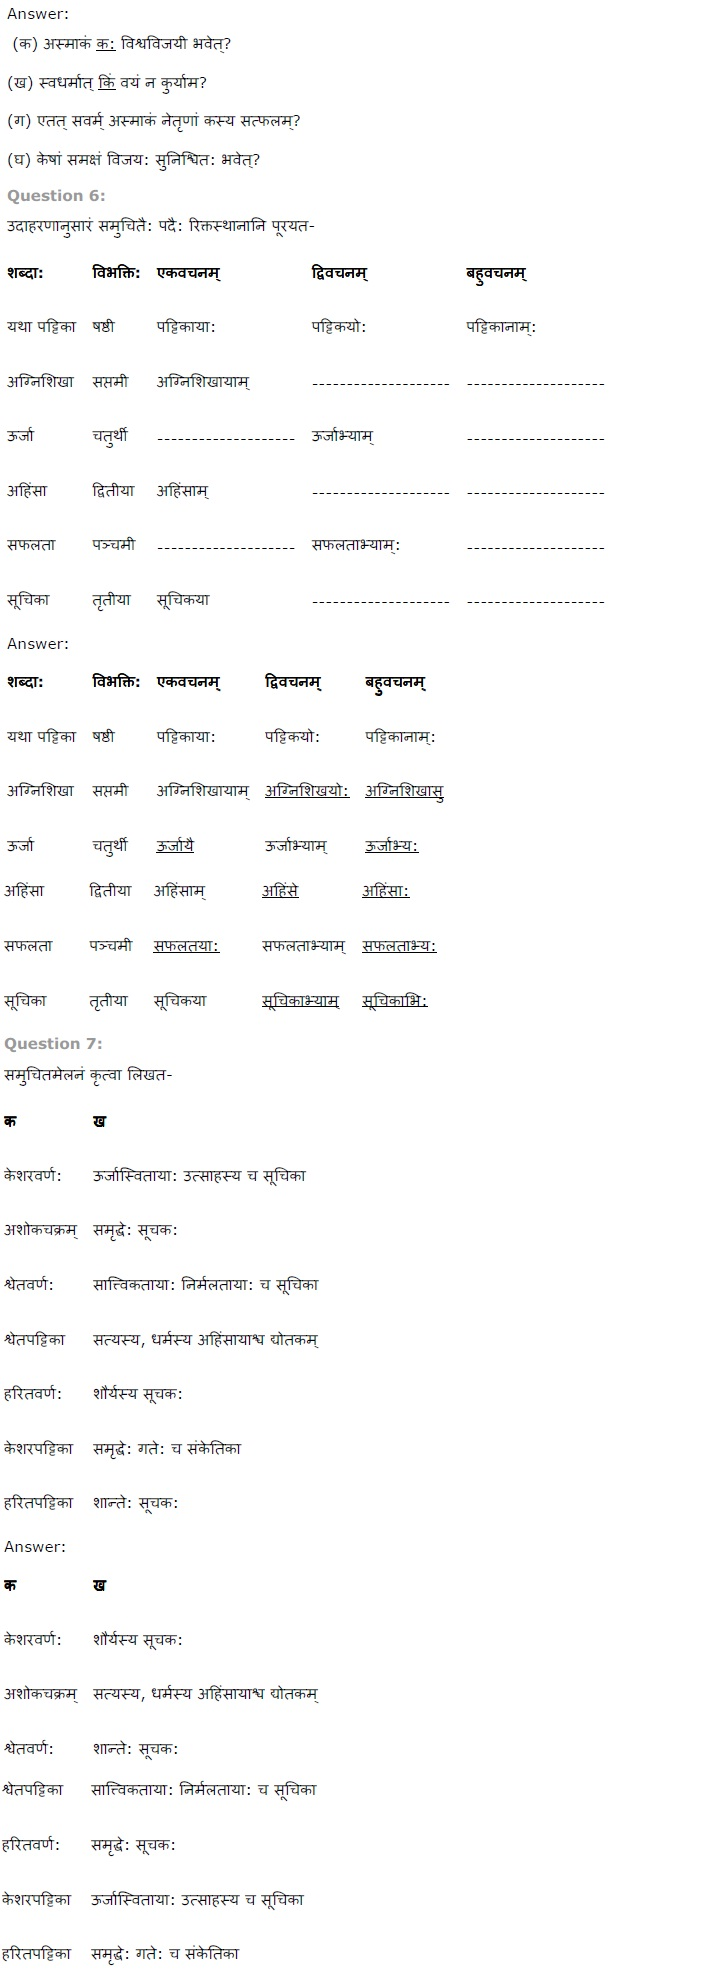 NCERT Solutions for Class 7th Sanskrit Chapter 8   त्रिवर्ण ध्वज